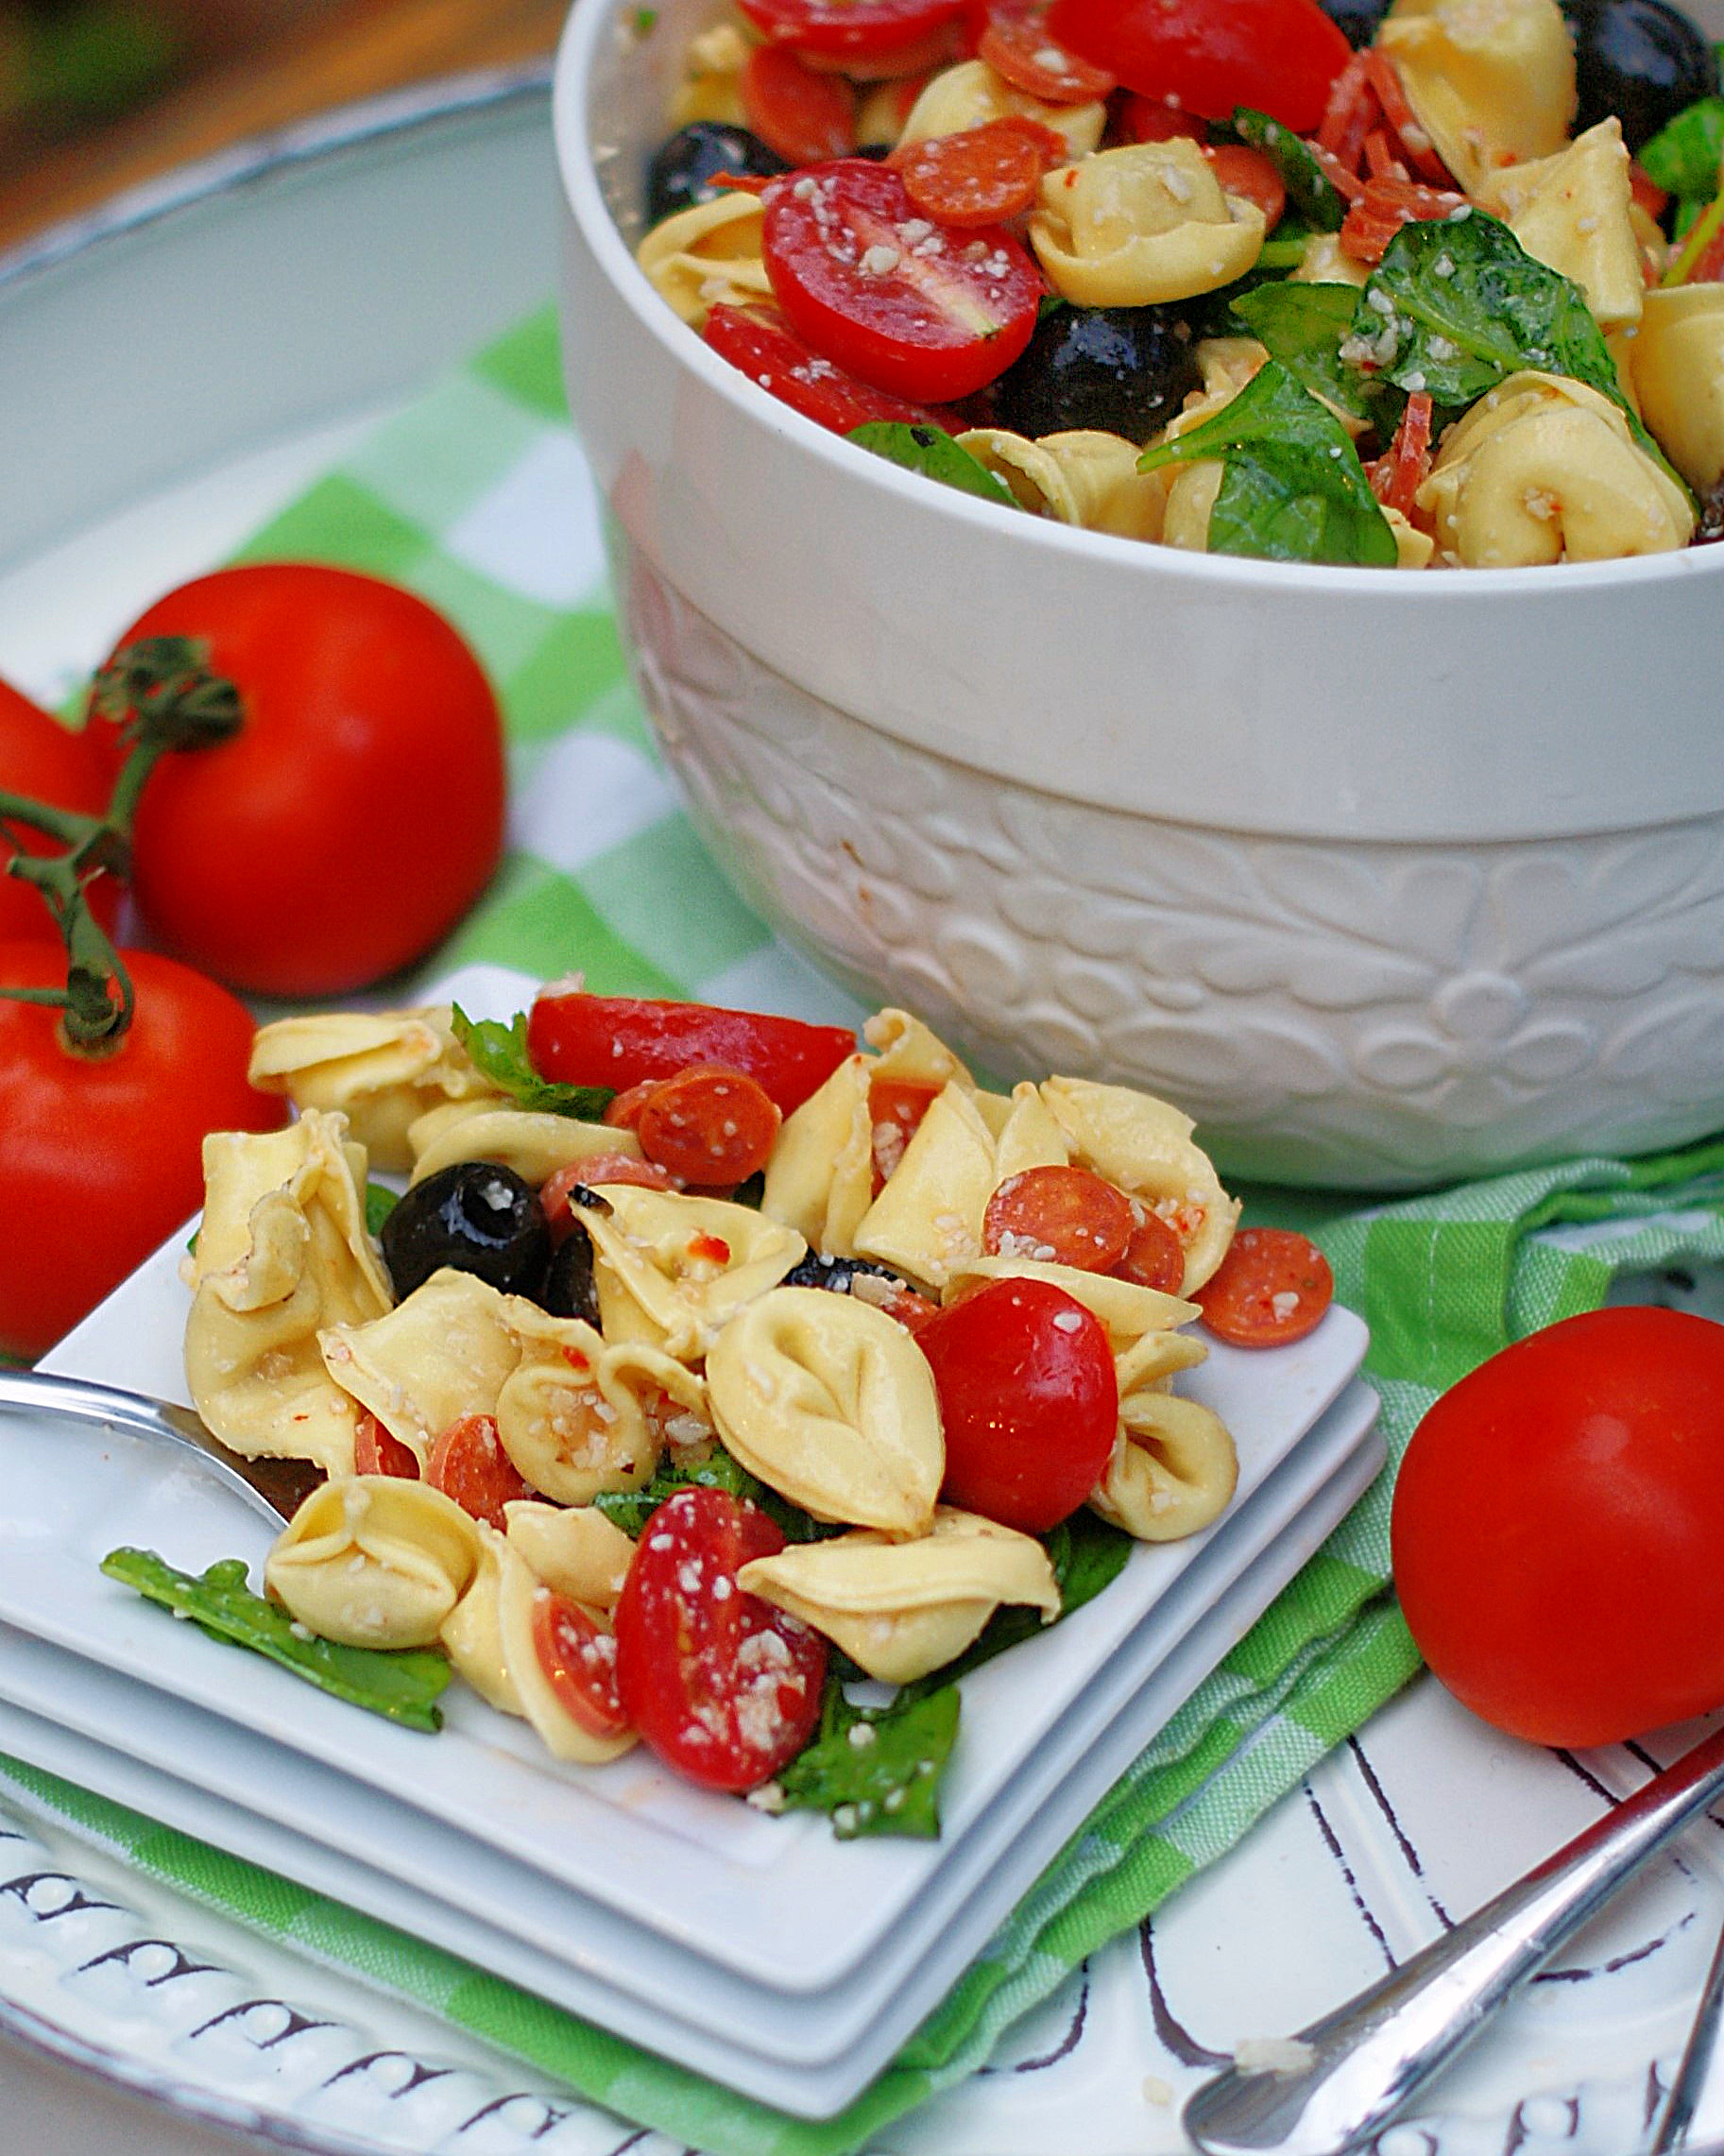 A serving of cold tortellini pasta salad on a plate.